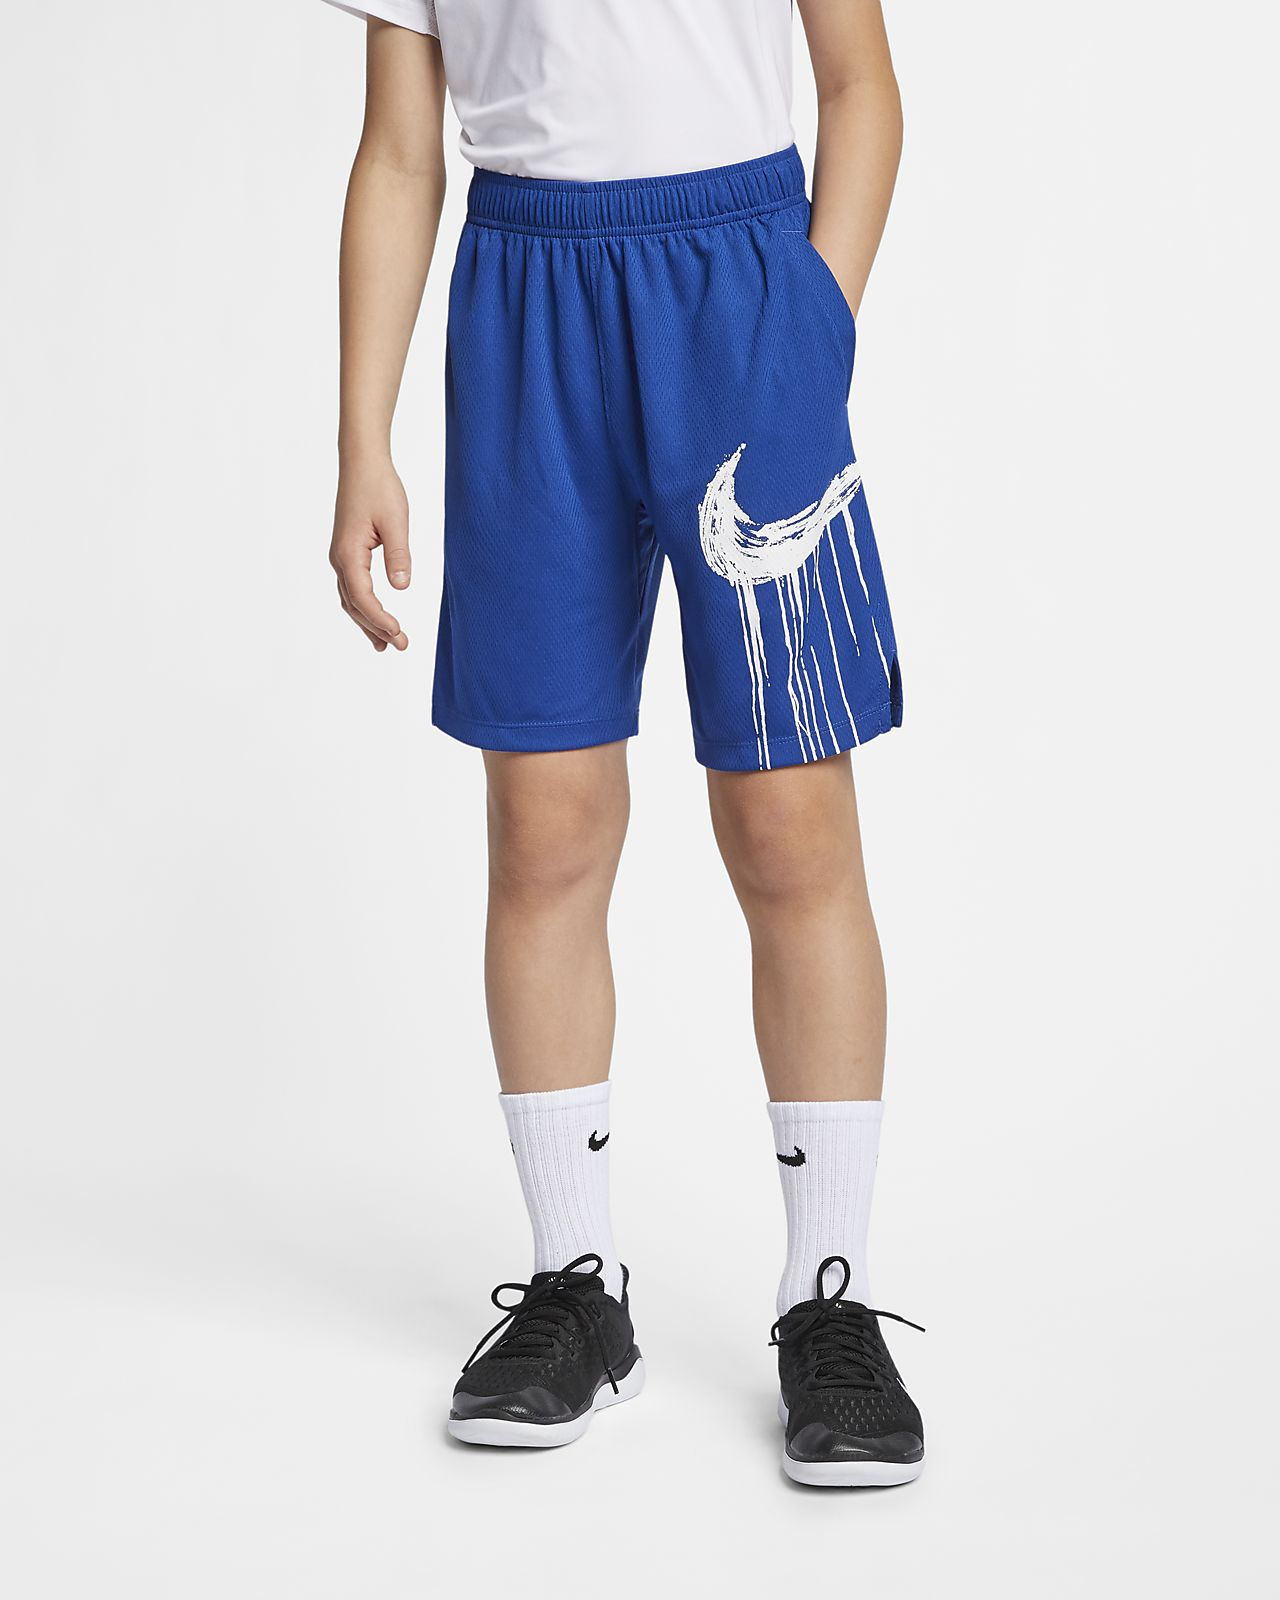 Nike Dri-FIT Older Kids' (Boys') Graphic Training Shorts